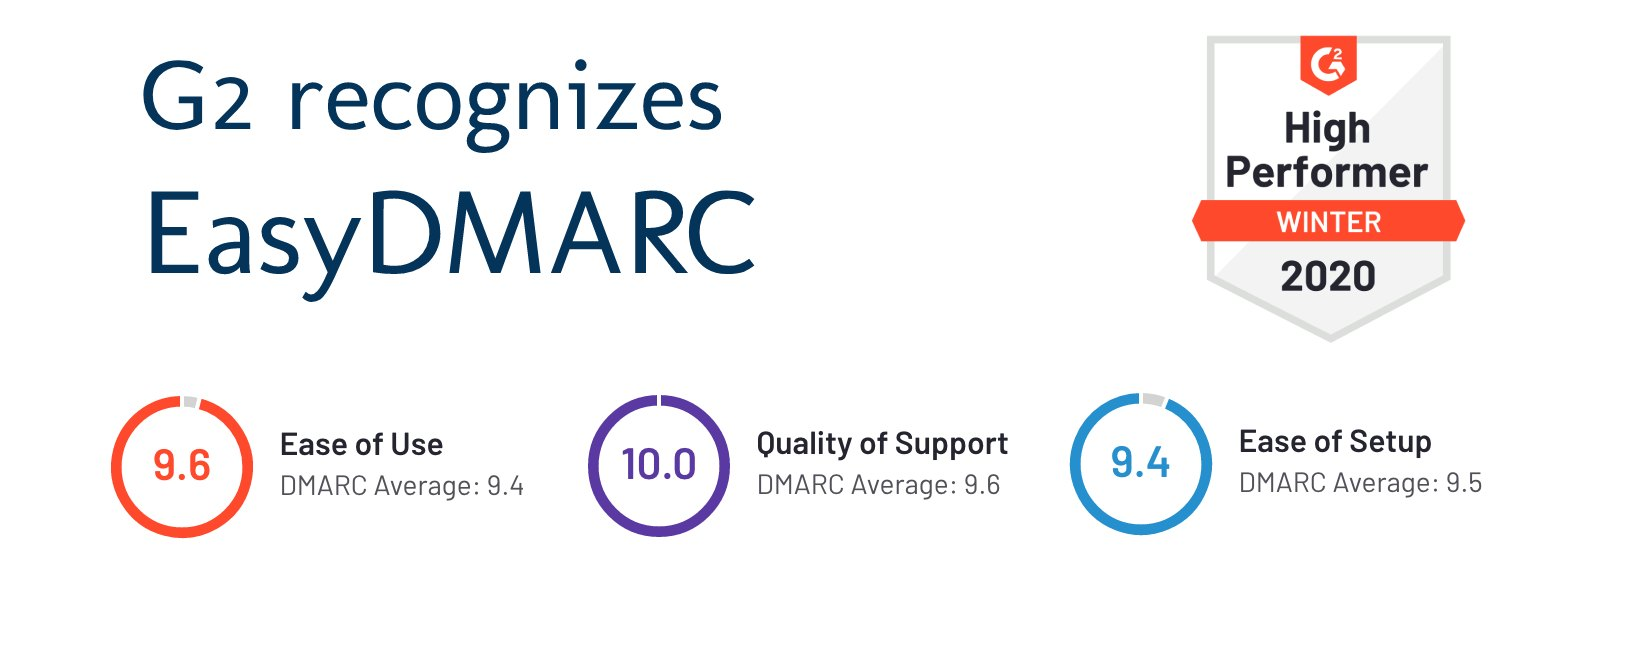 EasyDMARC-High-Performer-in-the-DMARC-category